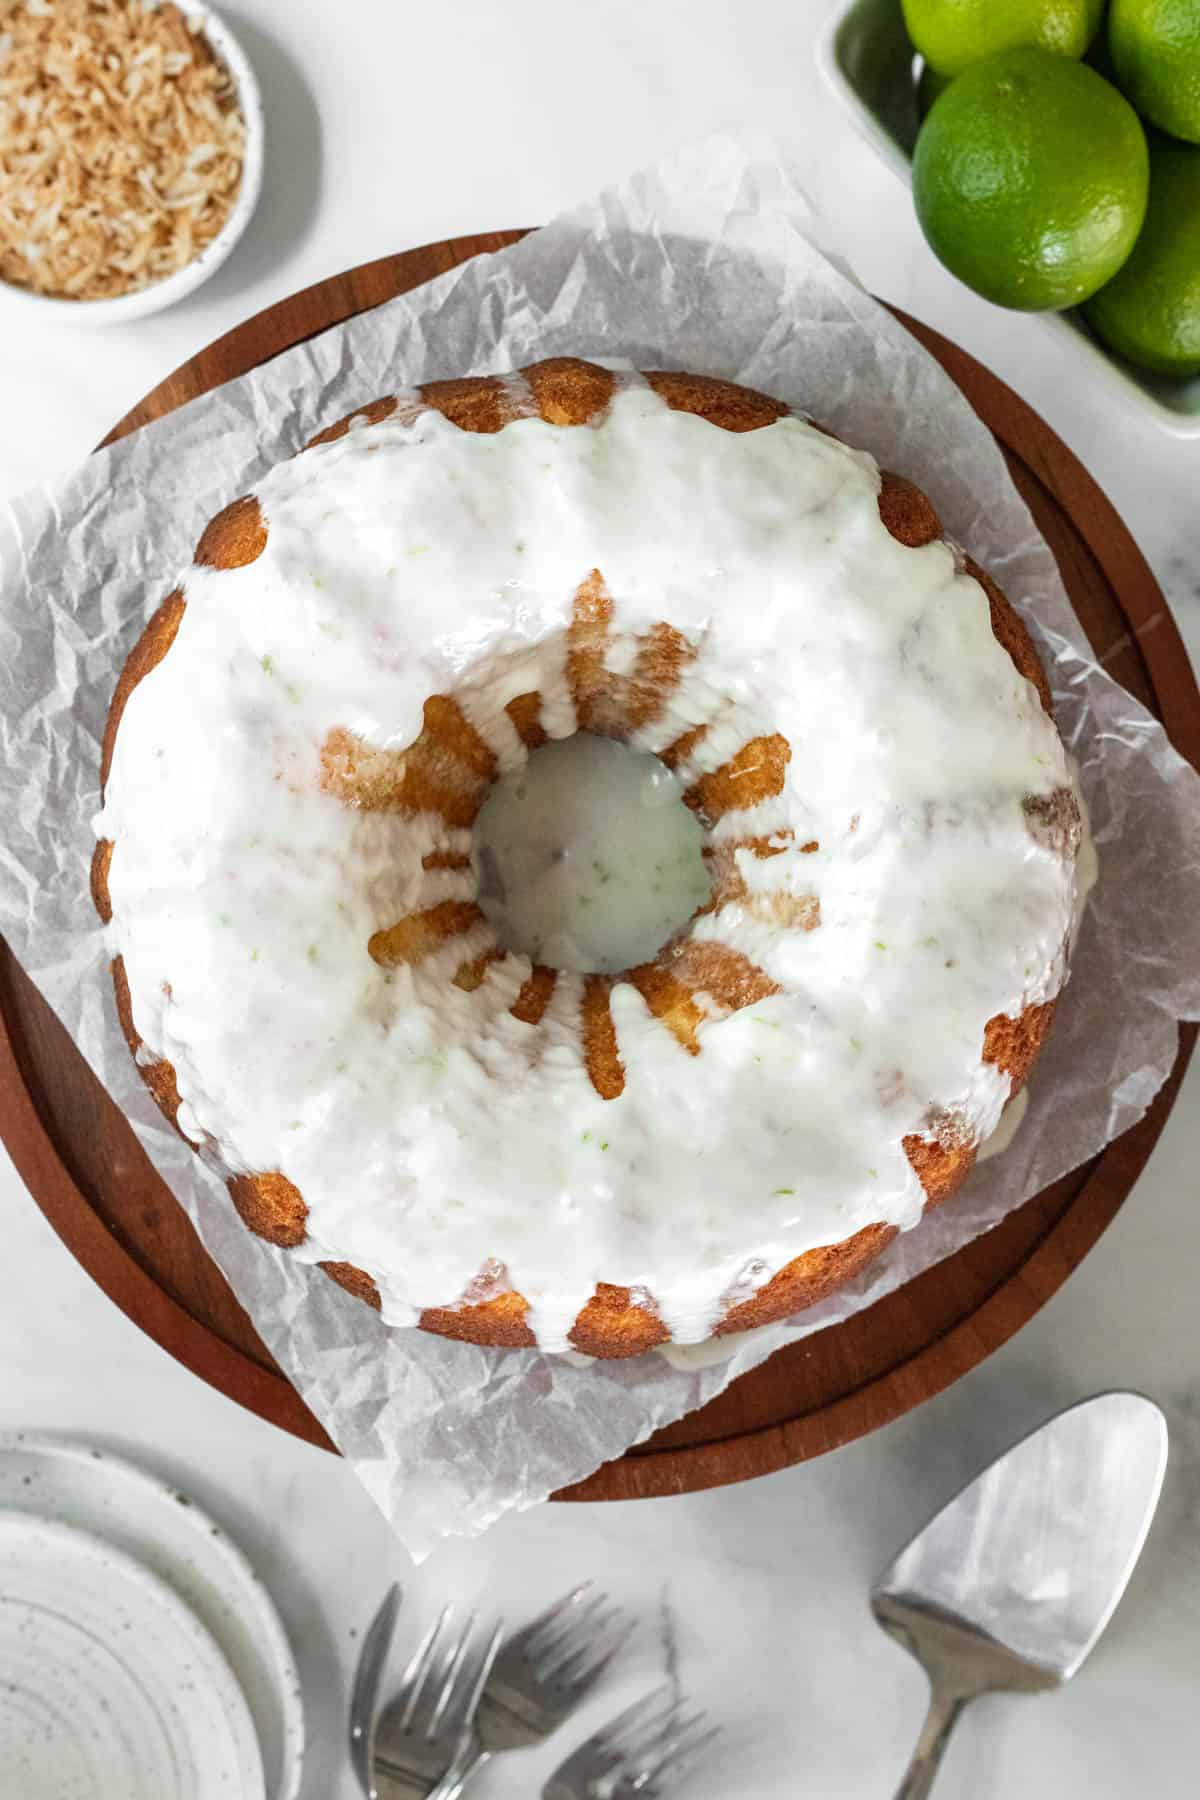 Coconut lime cake on a cake stand and drizzled with glaze.